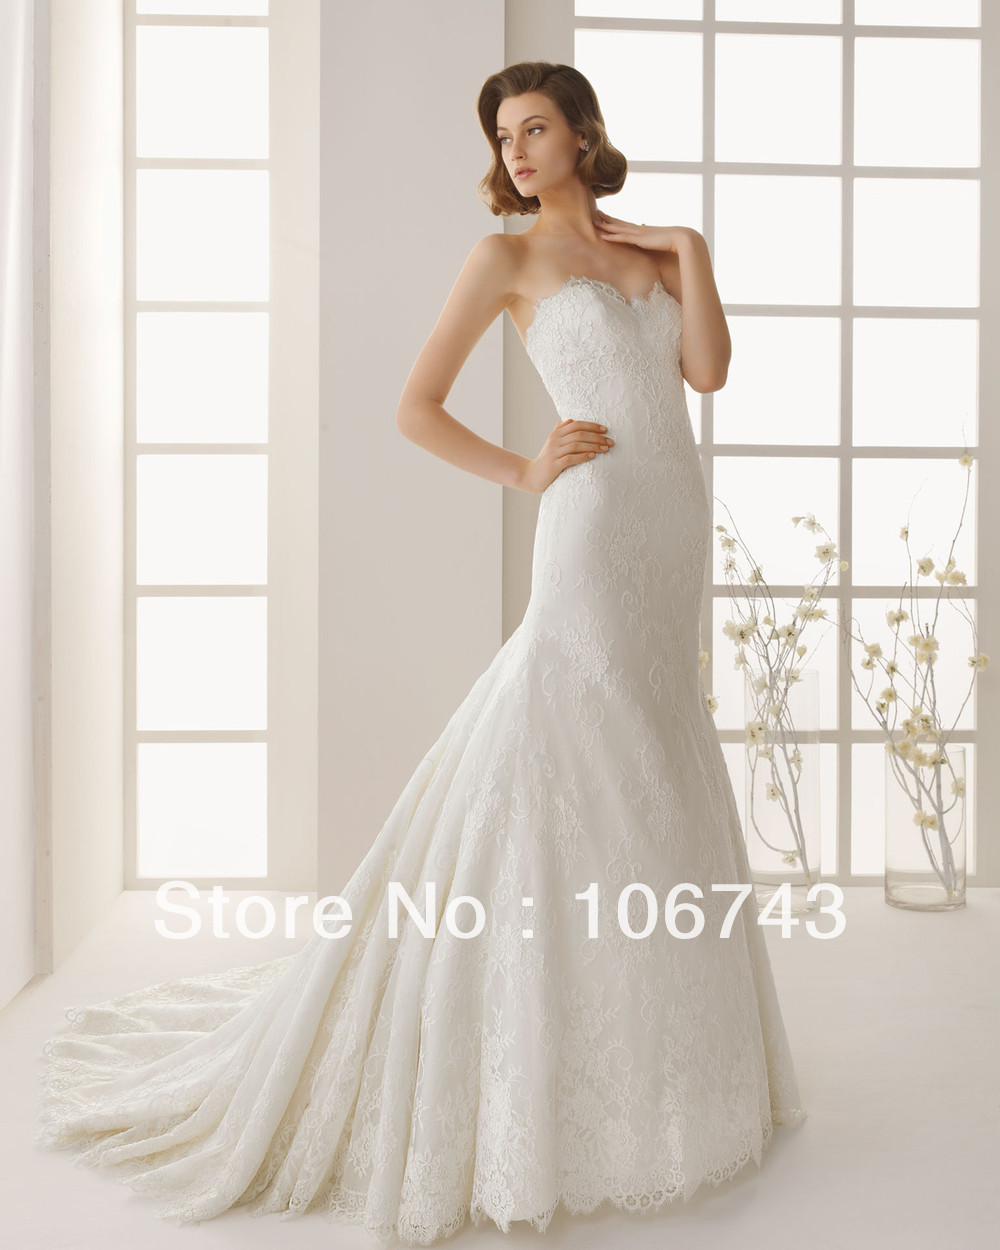 Free Shipping 2018 New Style Hot Sale Sexy Bride Sweet Princess Lace With Jacket Custom Size Bridal Bridesmaid Dress